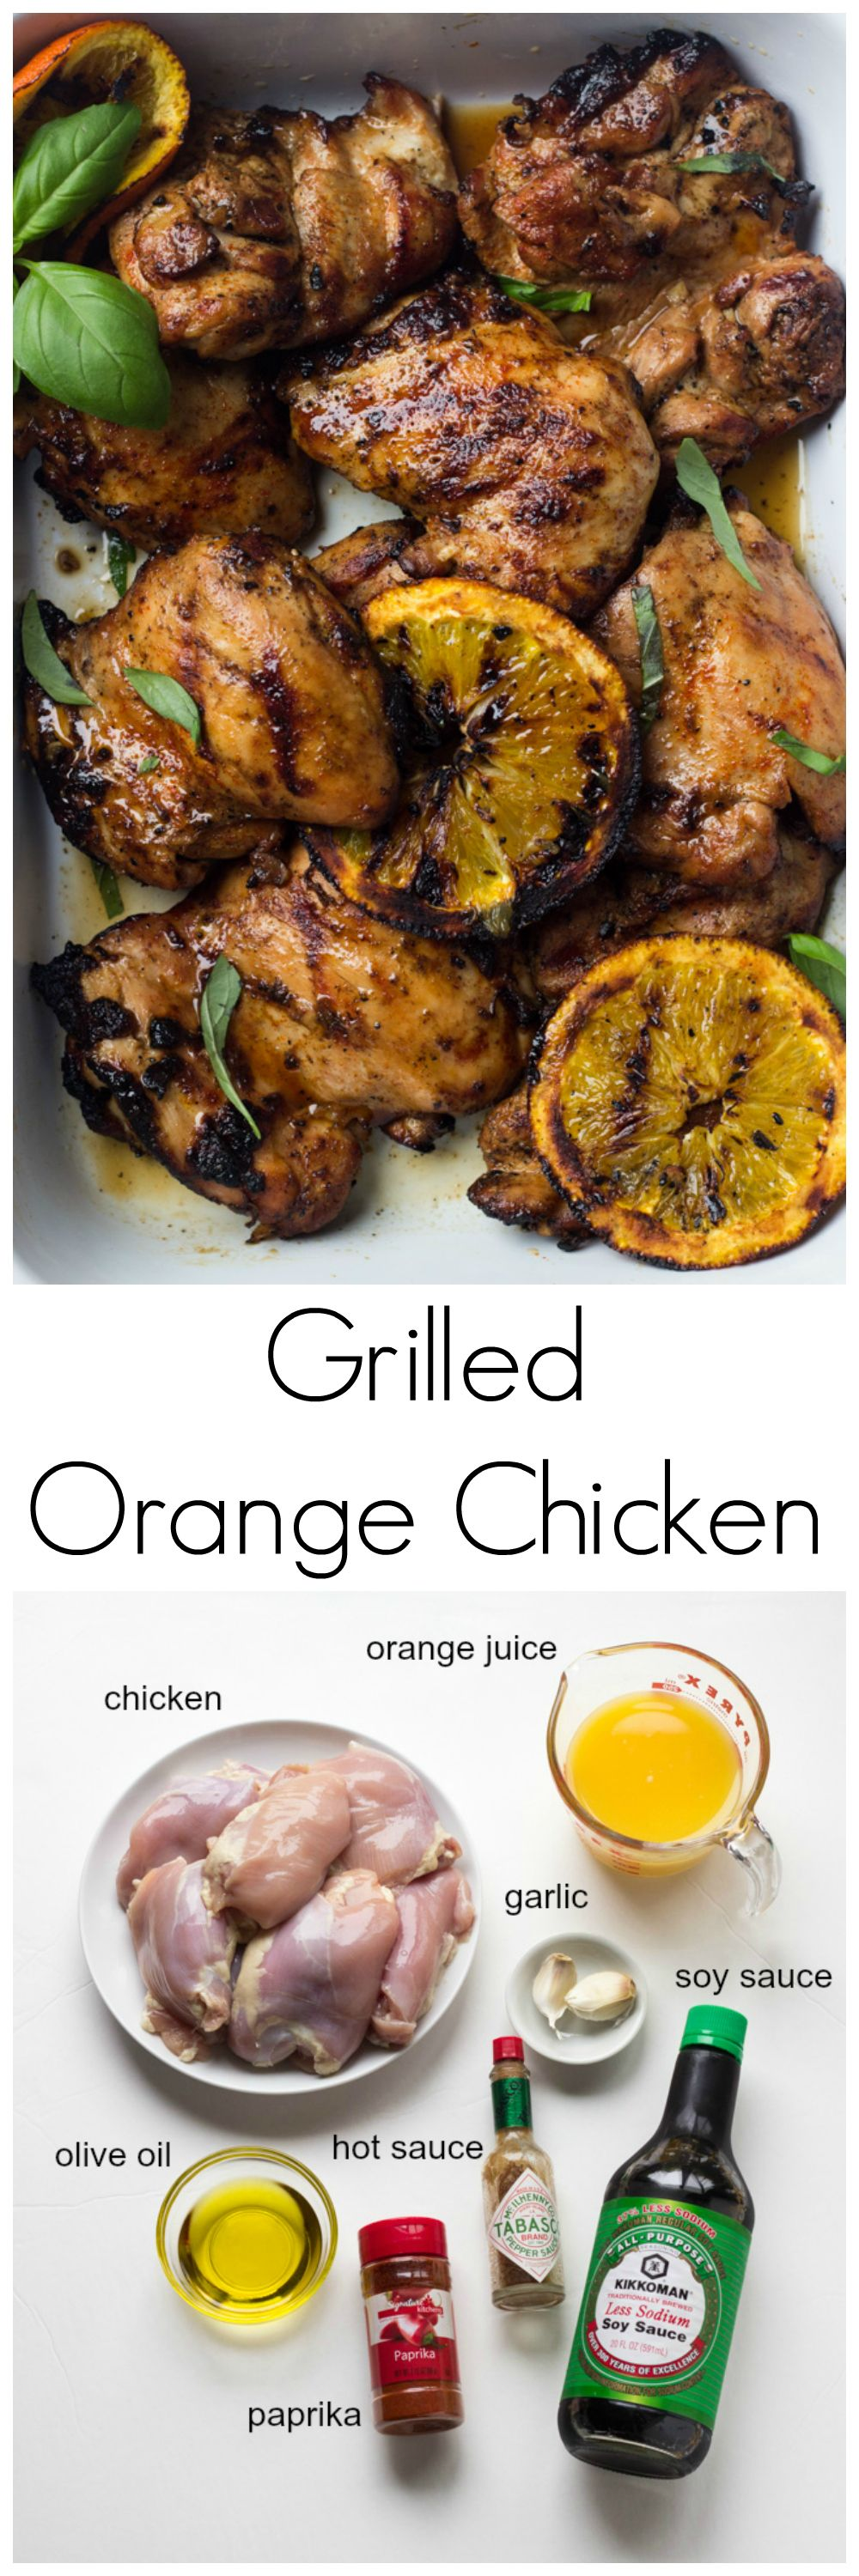 Grilled Orange Chicken Recipe [VIDEO] - Little Broken